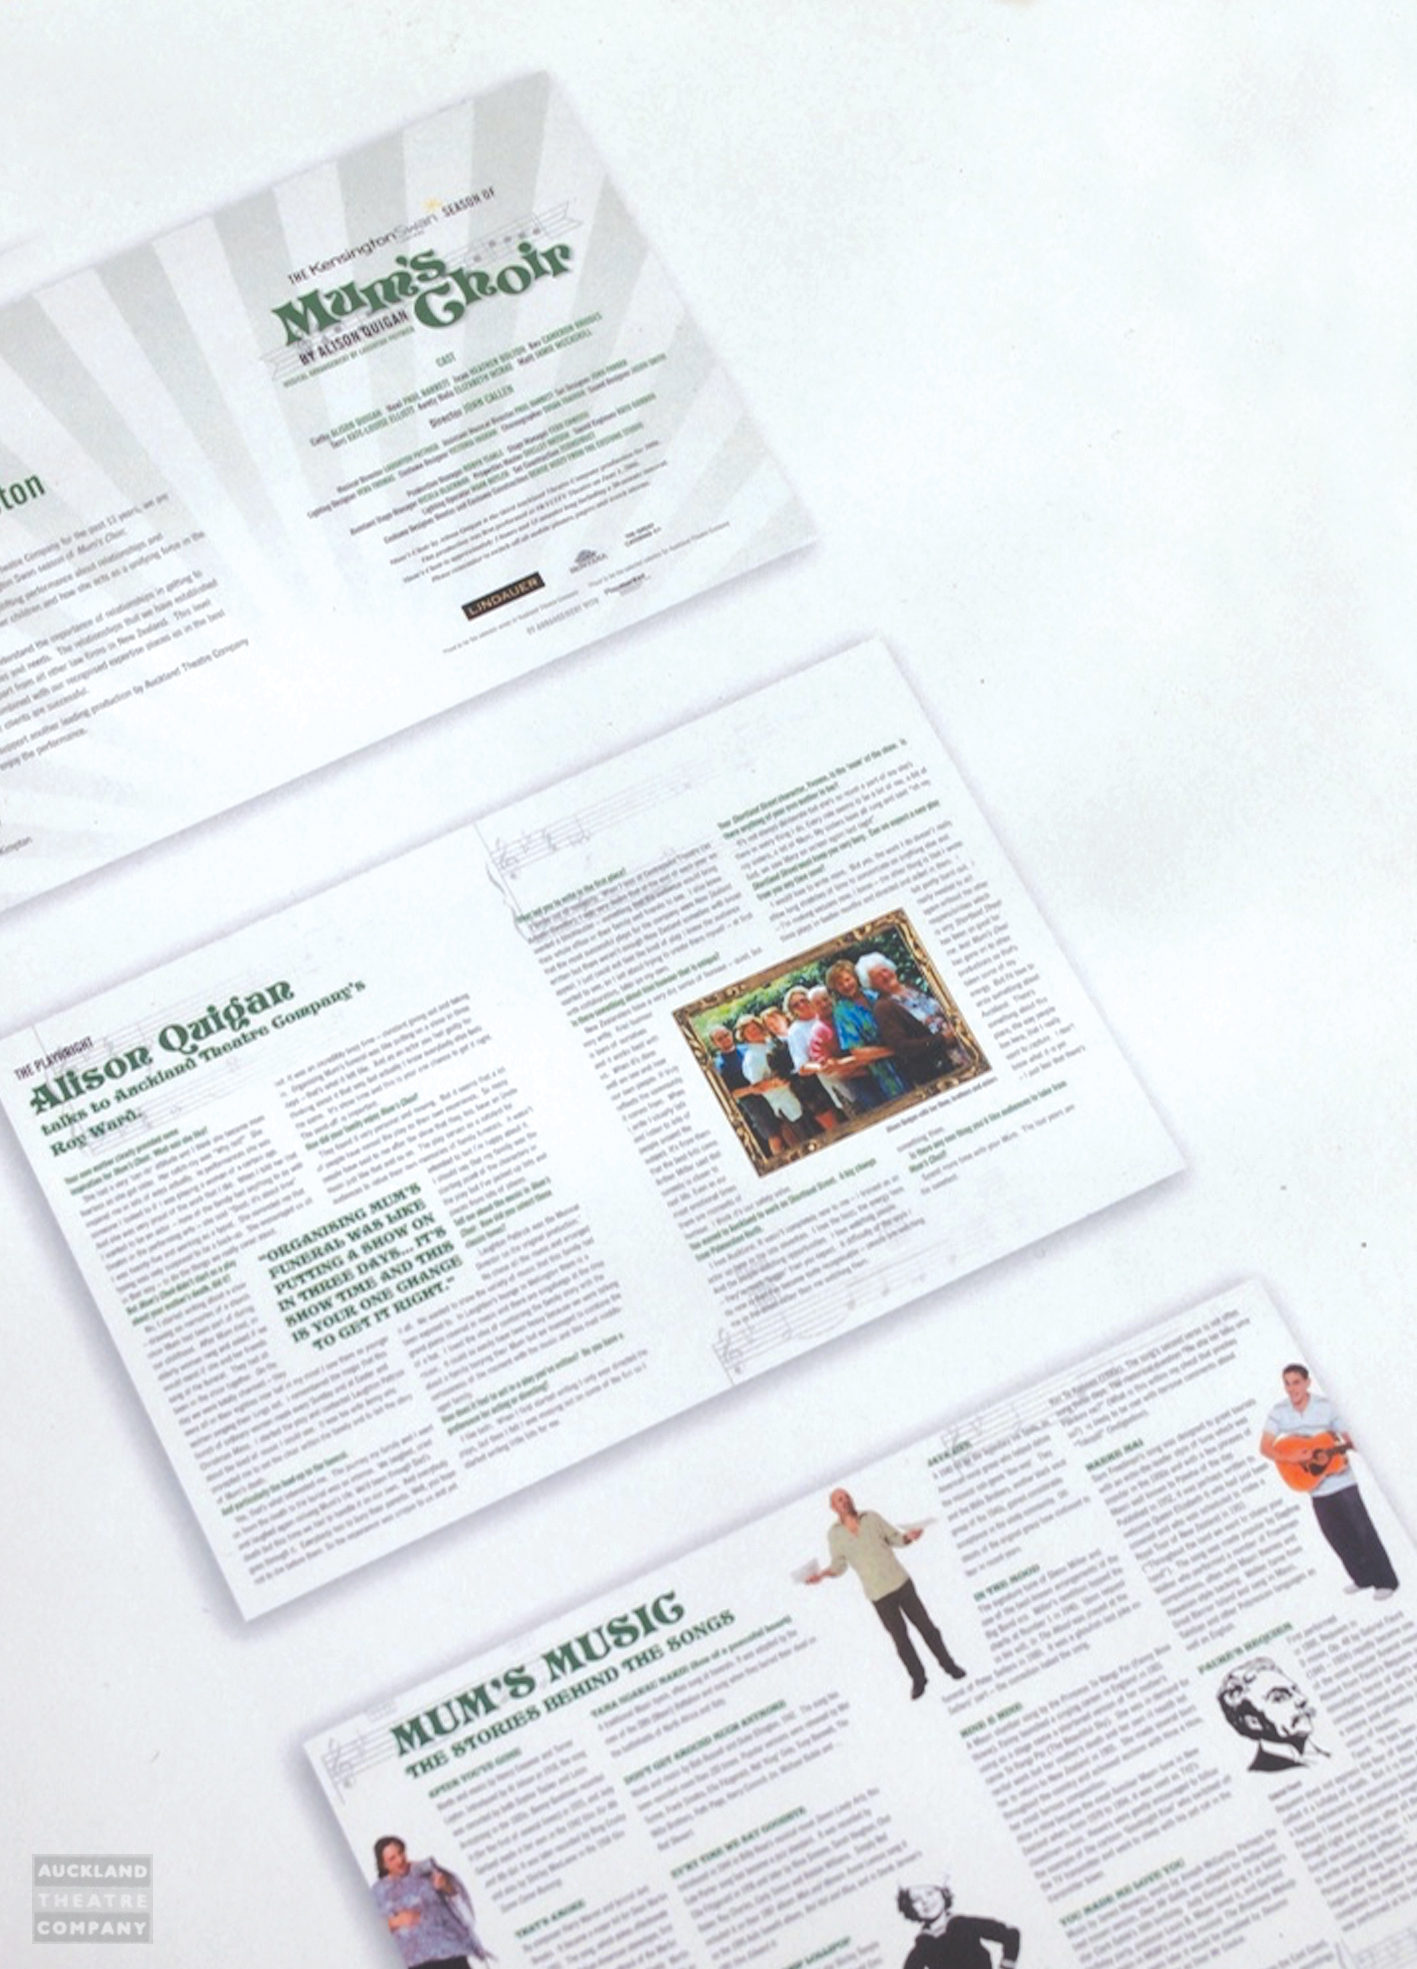 [Auckland Theatre Company] 2006 Design and layout of the Mum's Choir programme following the look and feel of the Mum's Choir concept.